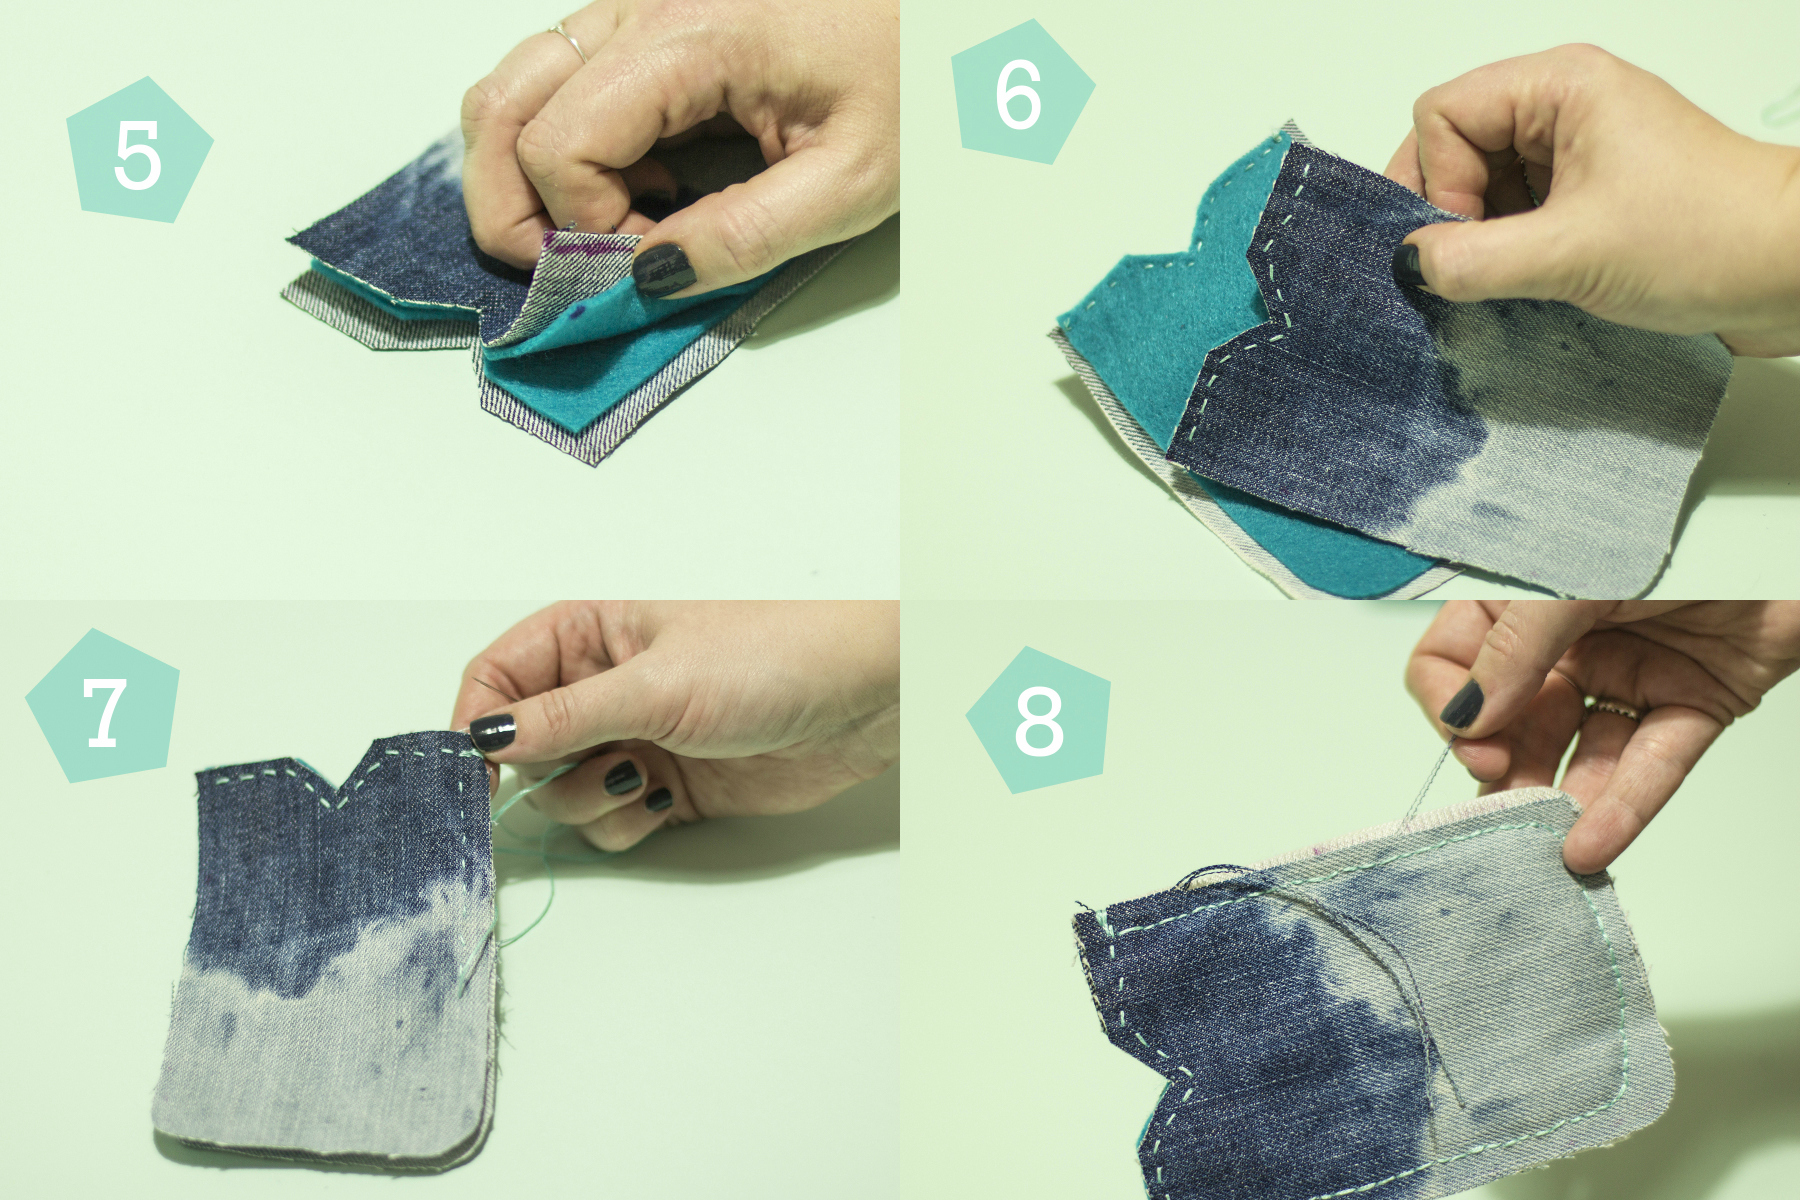 Simple Craft Tutorial: Upcycled Phone Case Steps 5-2-8